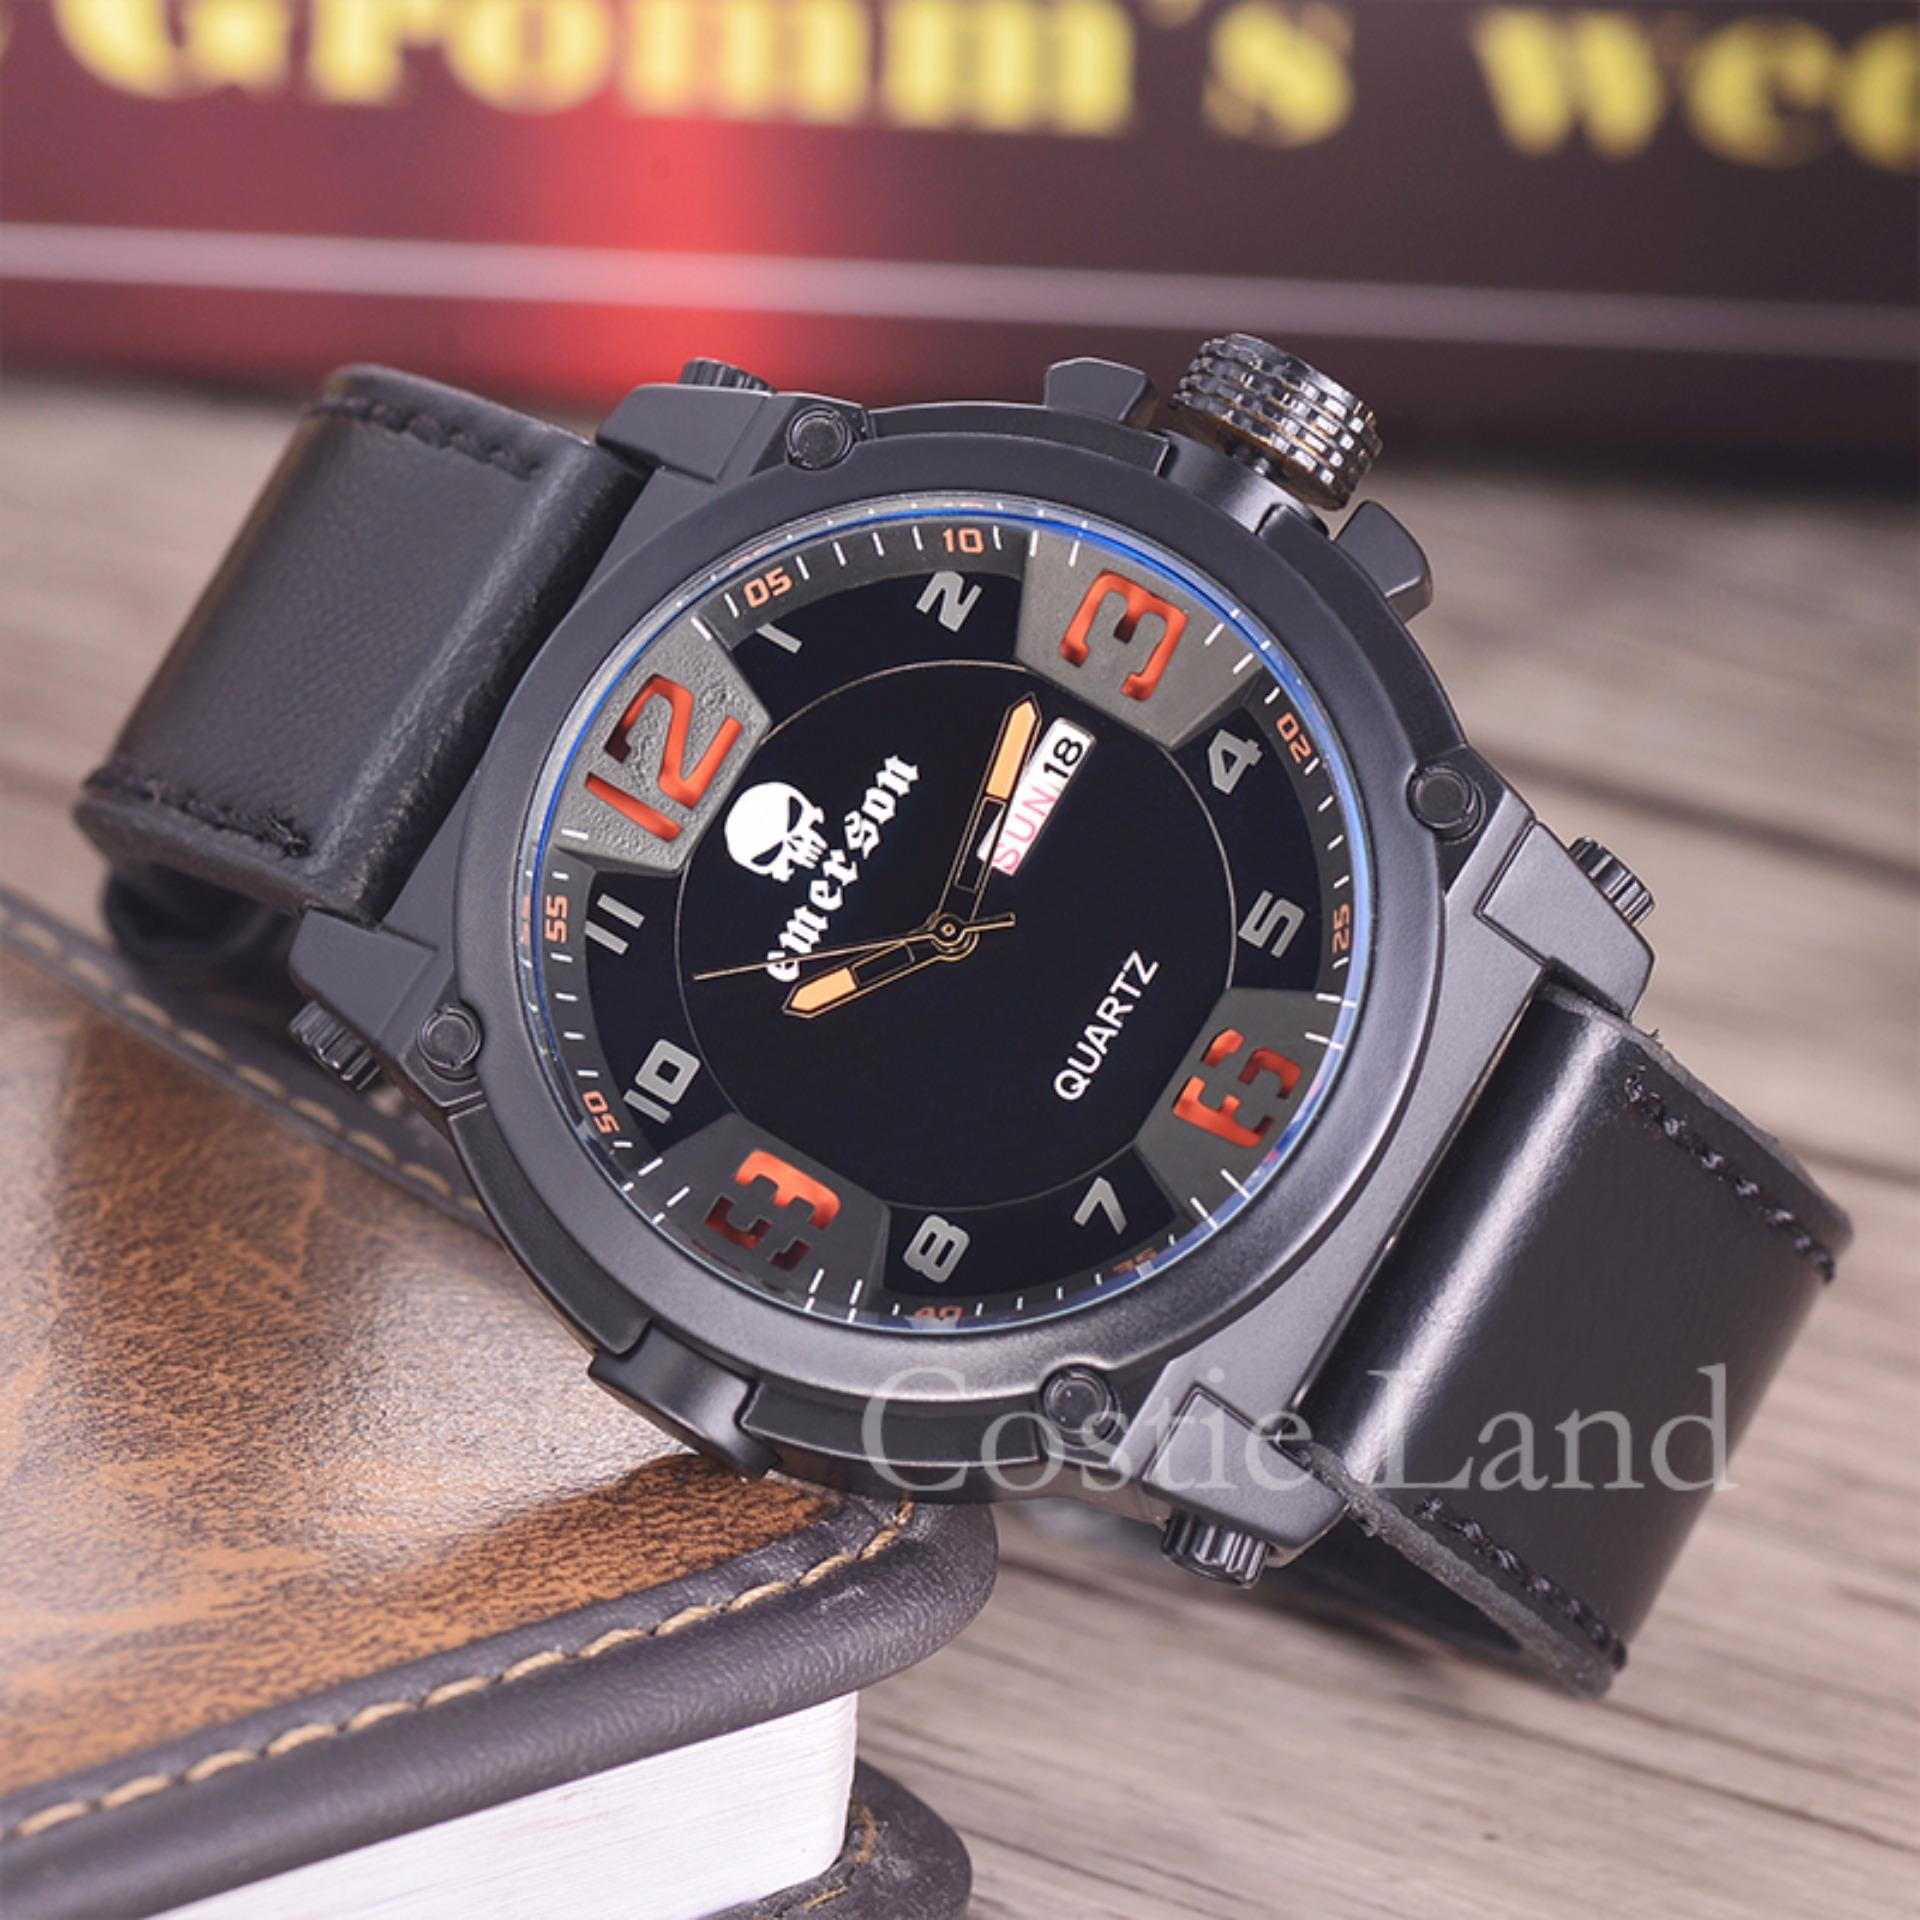 Emerson - Jam Tangan Pria - Body Black - Black/Orange Dial .